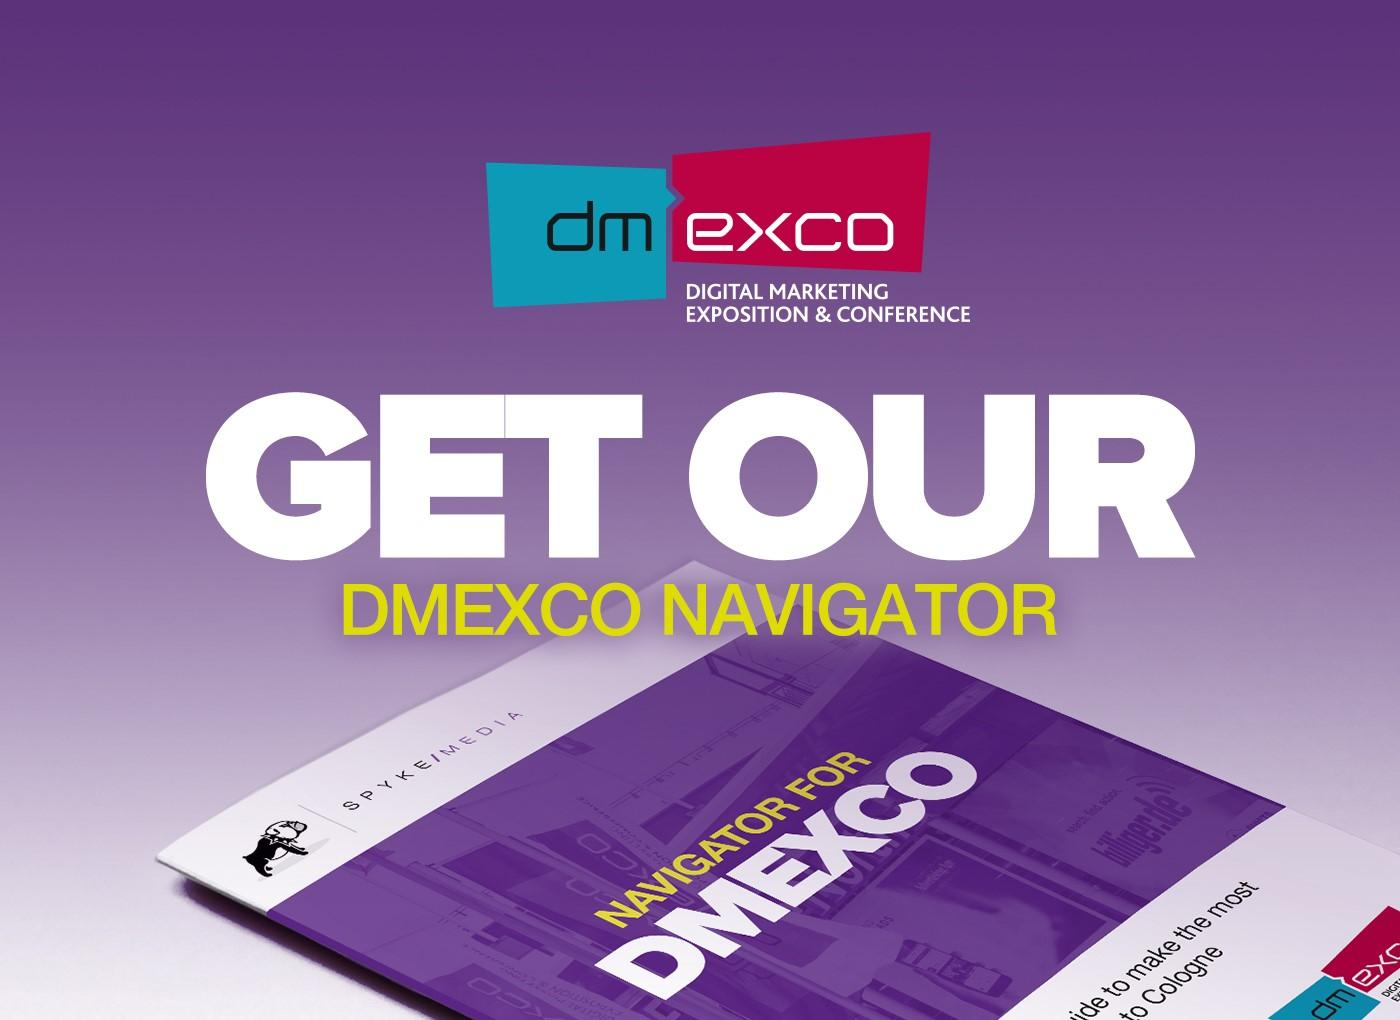 Spyke Media Dmexco Navigator – your exclusive upgrade